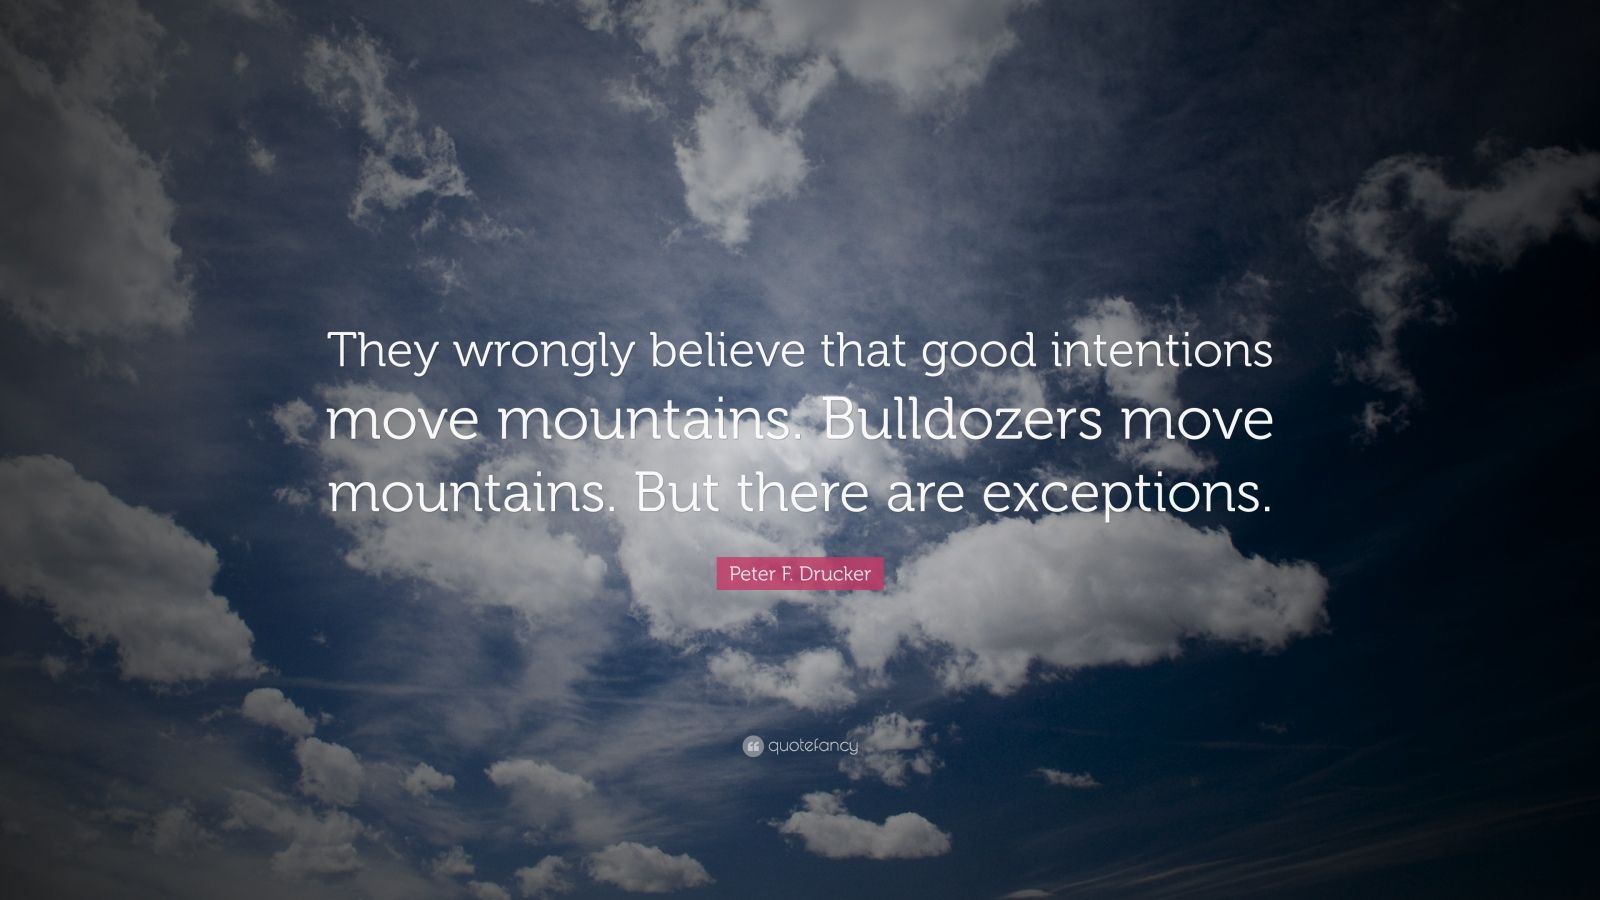 """Peter F. Drucker Quote: """"They wrongly believe that good intentions move mountains. Bulldozers move mountains. But there are exceptions."""""""